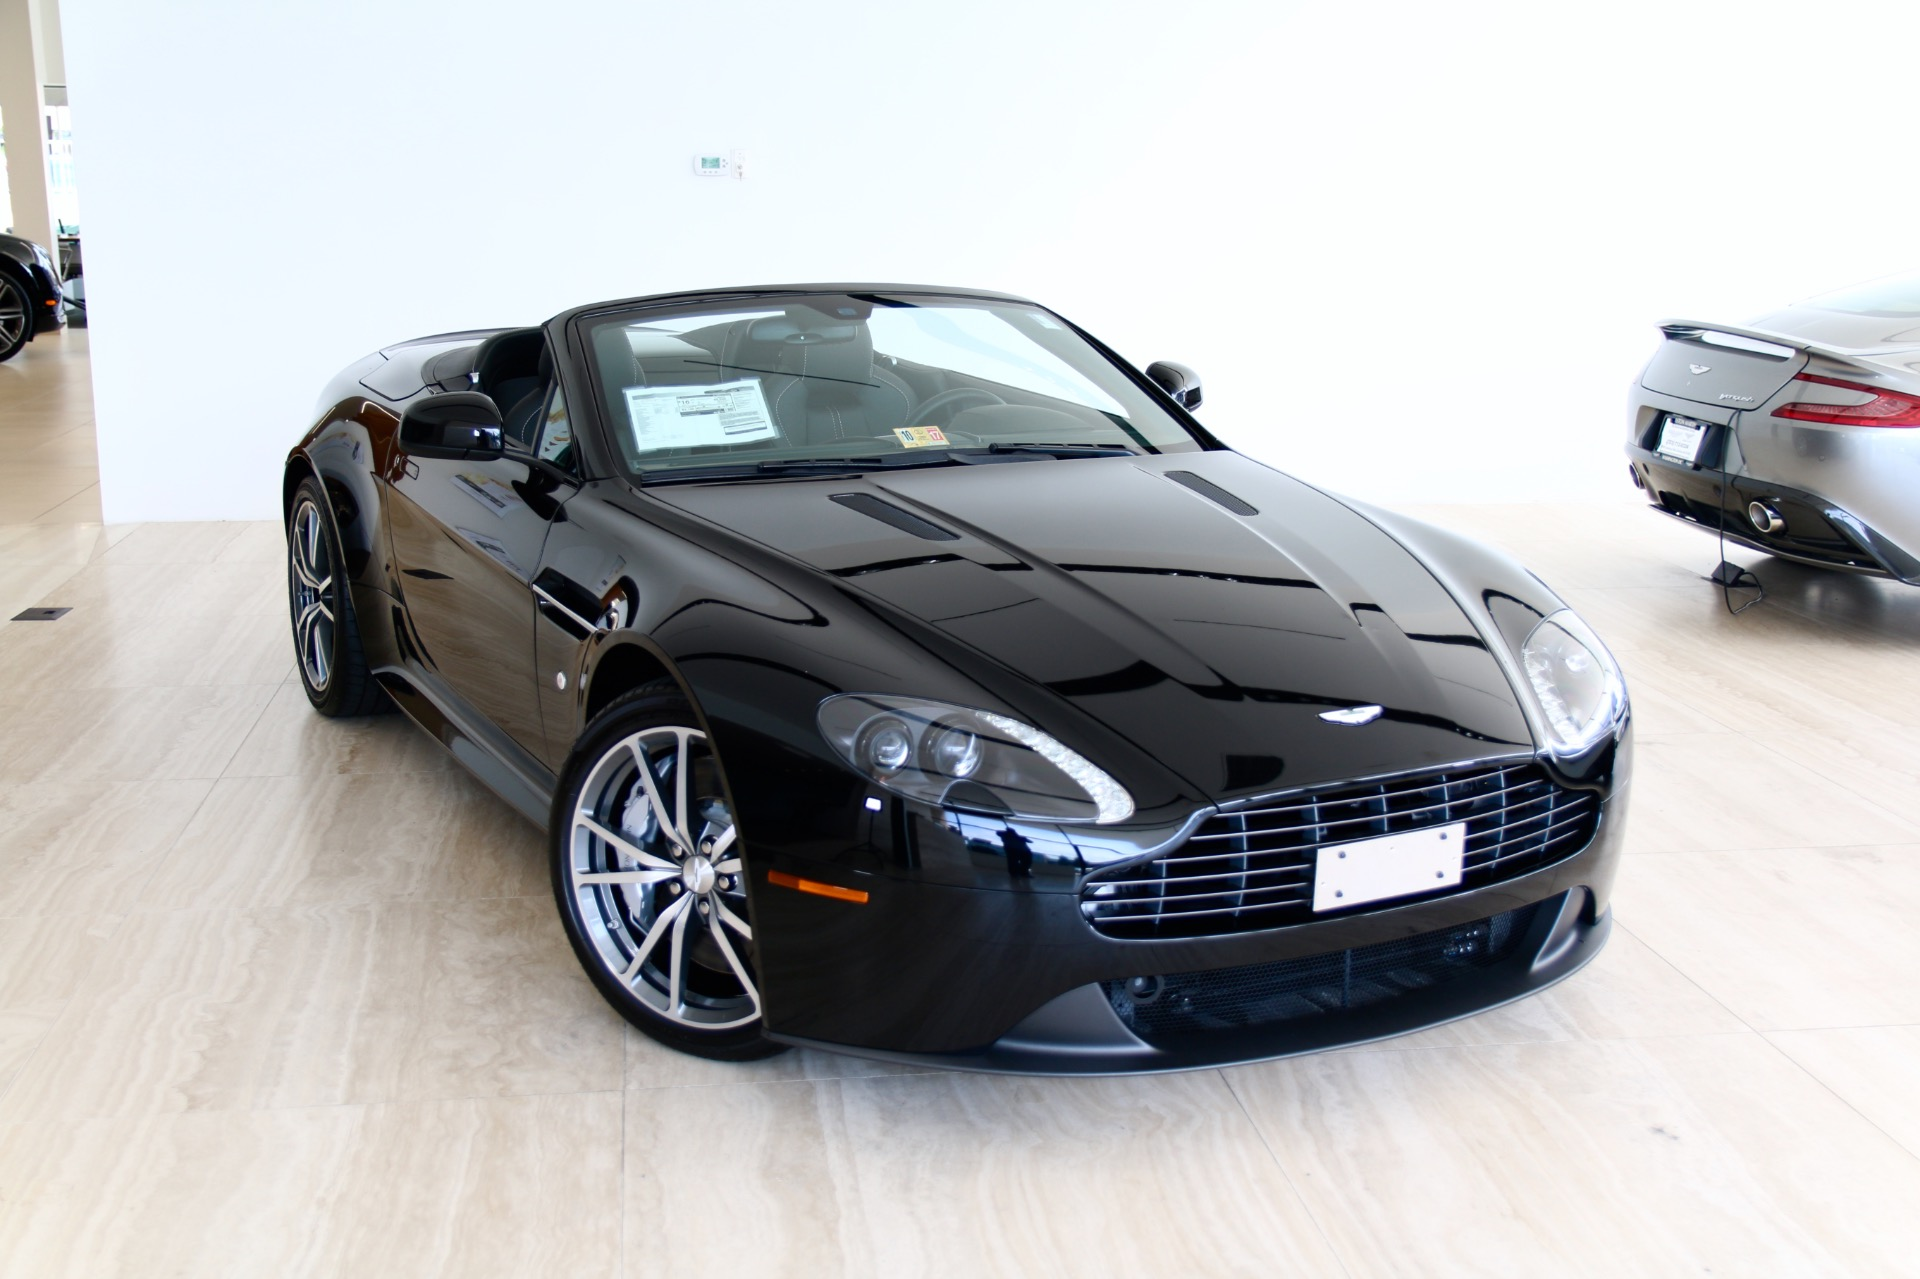 2016 Aston Martin V8 Vantage Gt Roadster Stock 6d20078 For Sale Near Vienna Va Va Aston Martin Dealer